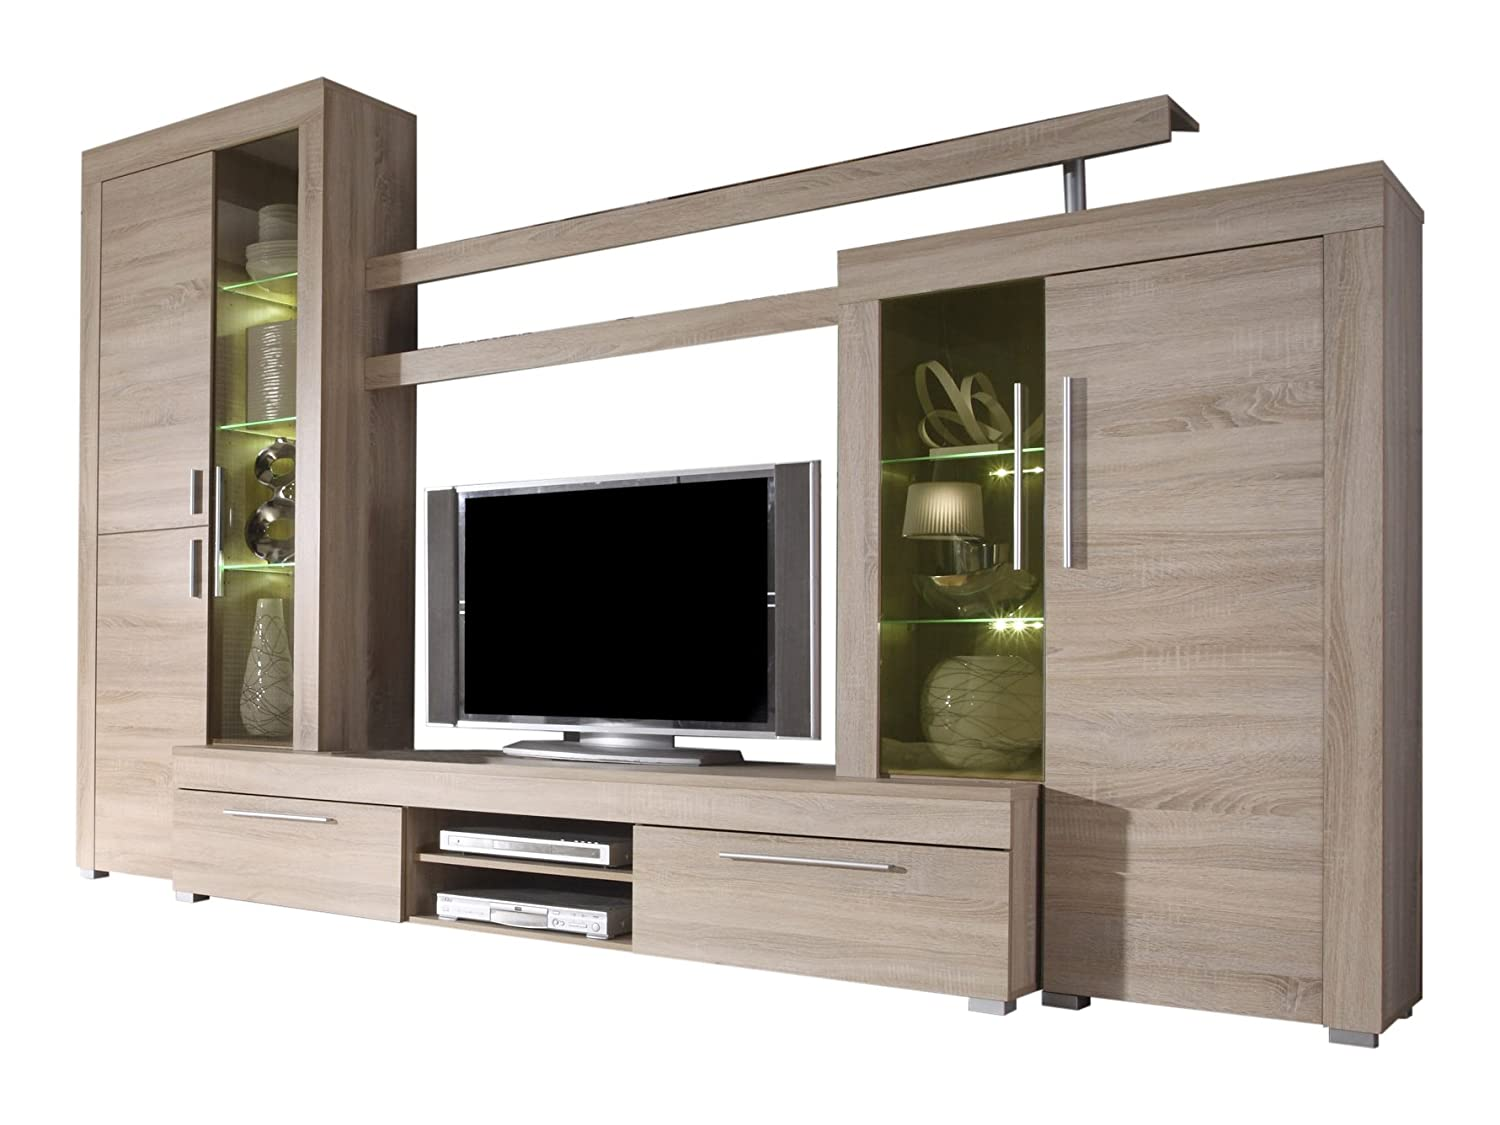 Furnline Boom Rough Cut And Burnished Glass TV Stand Wall Unit Living Room  Furniture Set, Light Oak Part 83